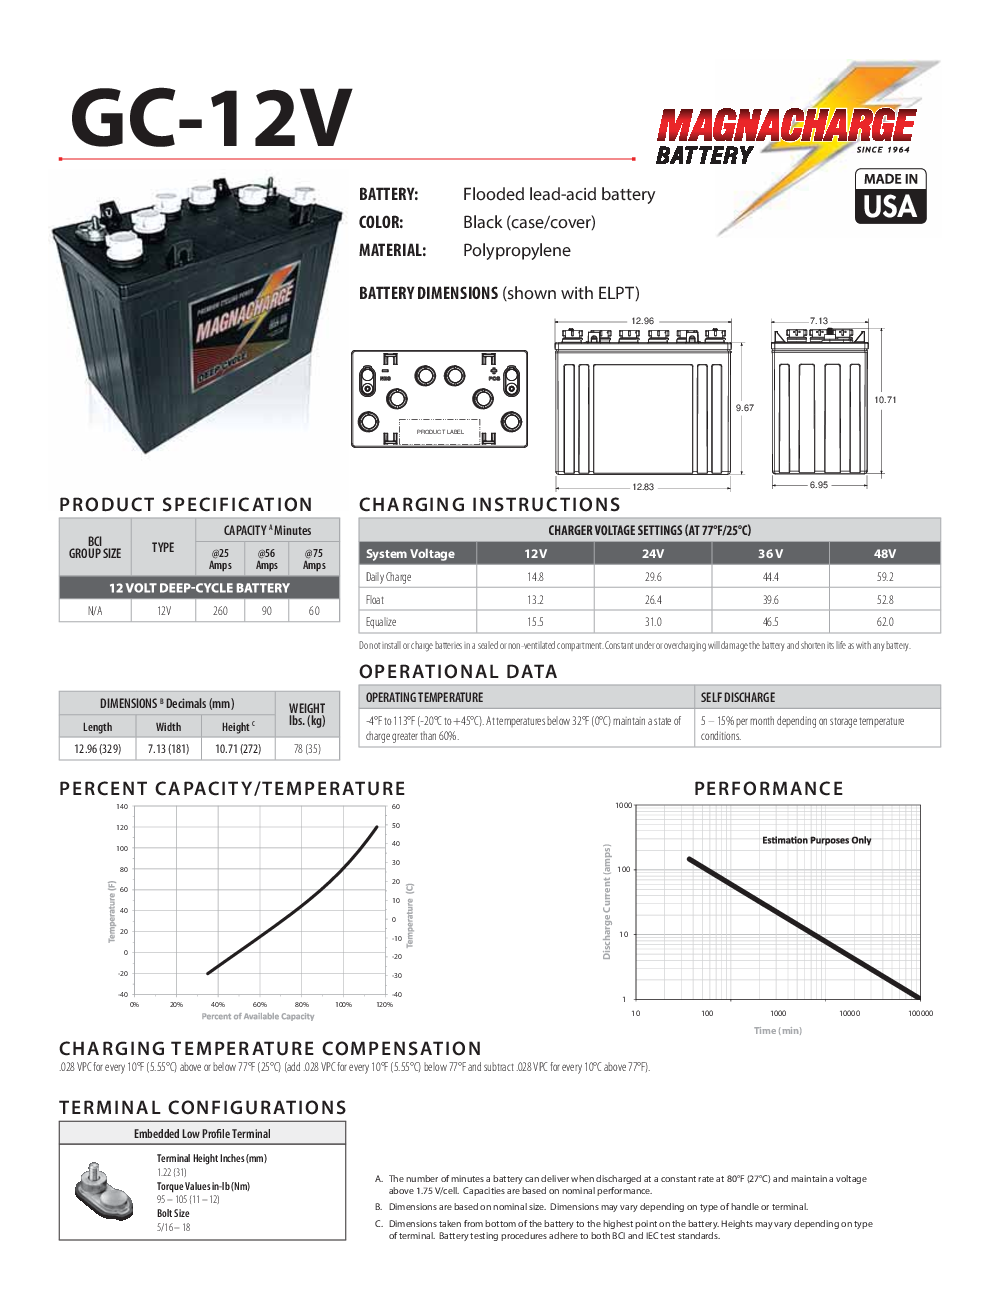 Magnacharge_(12v_GC-12V)SellSheets